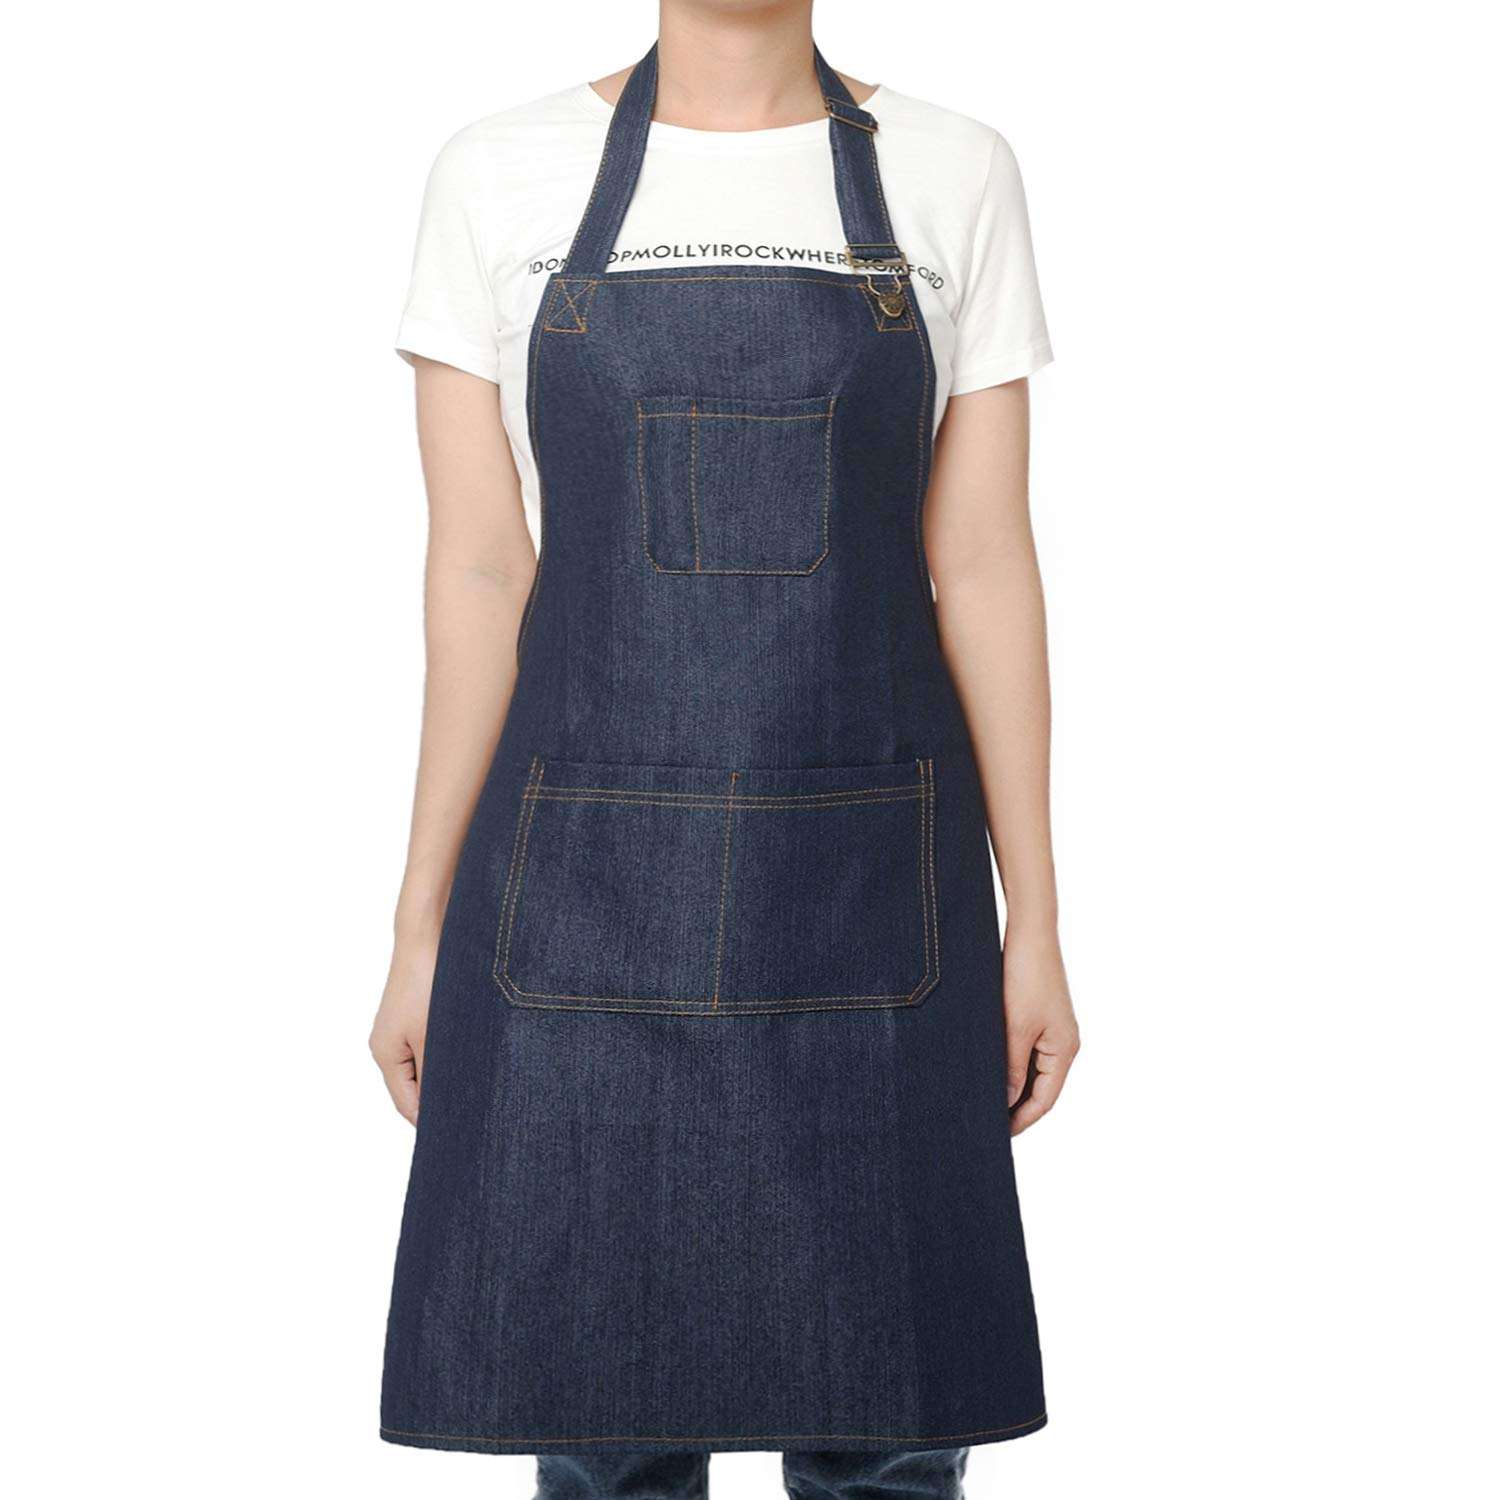 Bib [ Apron Denim Aprons ] Apron Manufacturer Customized Denim Apron BBQ Waist Aprons For Kitchen Apron Adjustable Bib